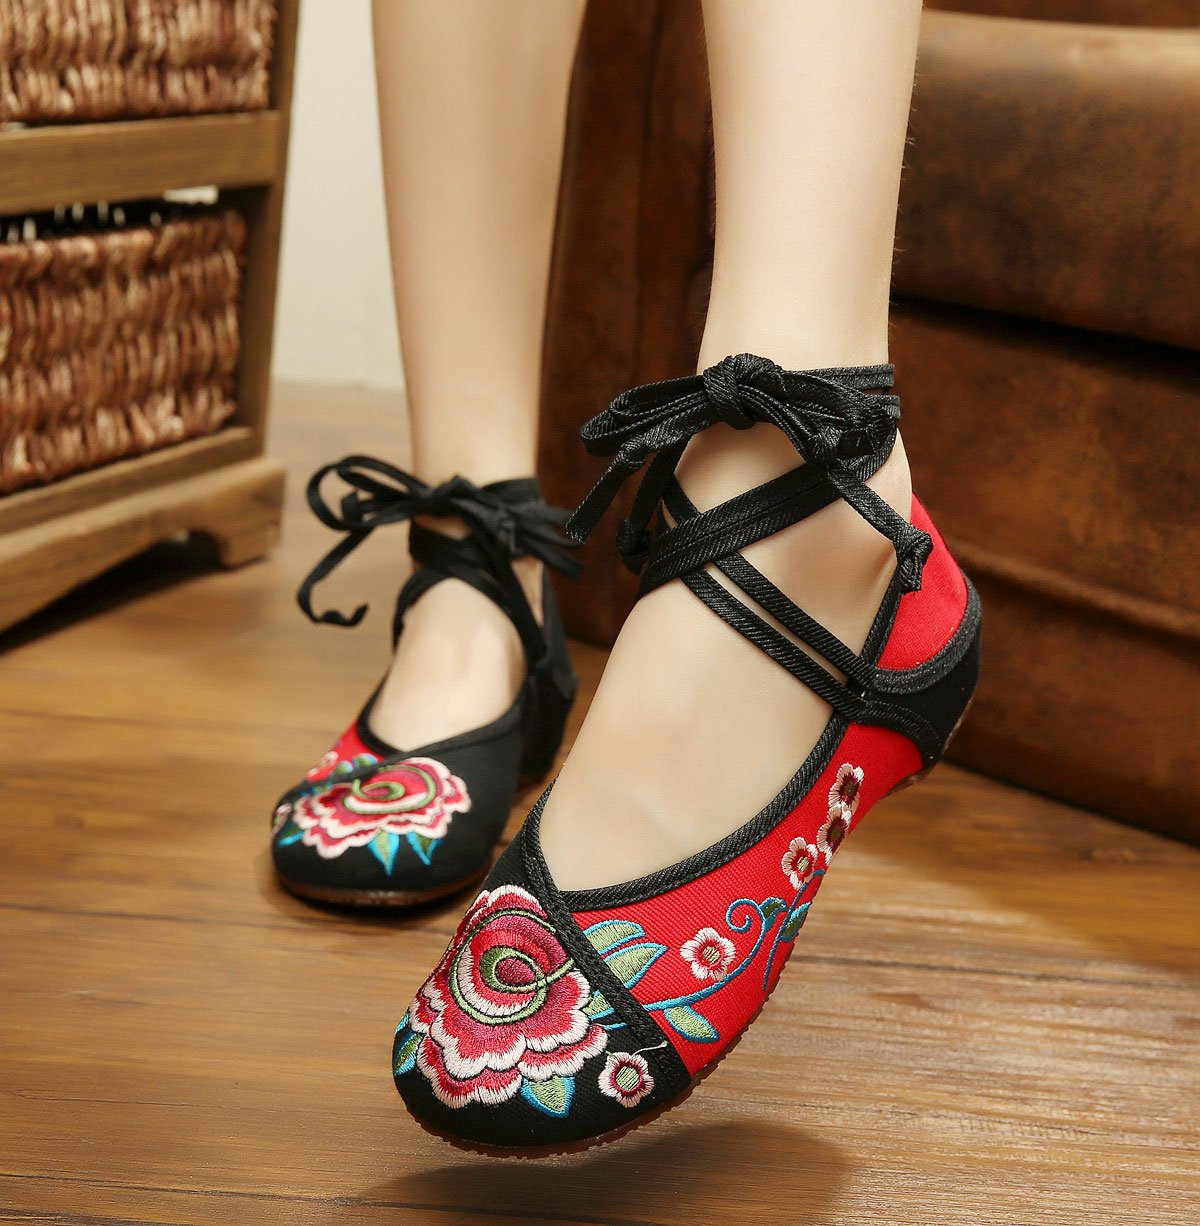 AvaCostume Women's Chinese Embroidery Strappy Multicolor Platform Dress Shoes Black 42 by AvaCostume (Image #1)